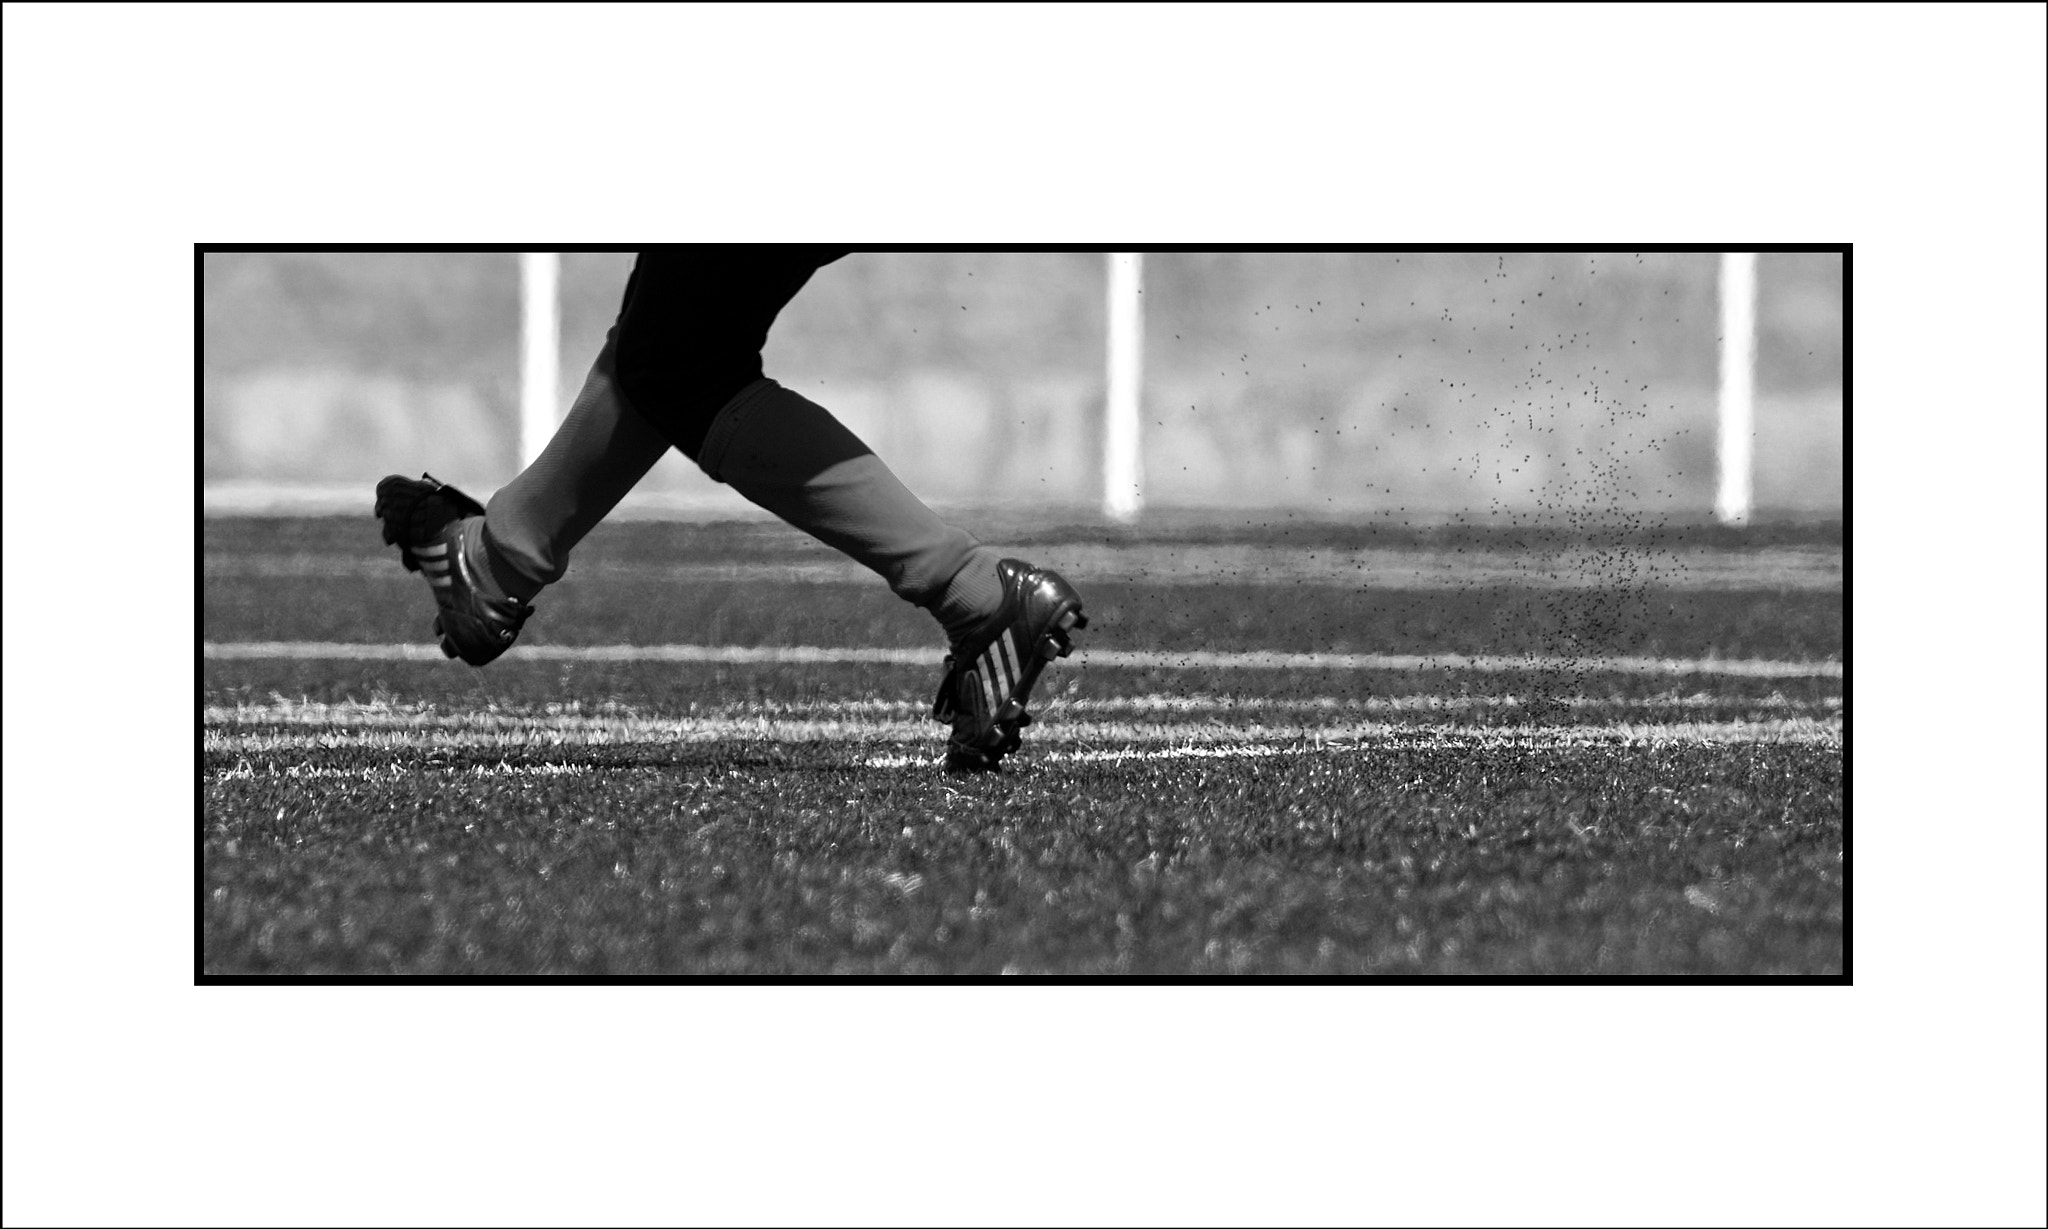 Photograph The Goalkeeper by Jose Luis Durante Molina on 500px